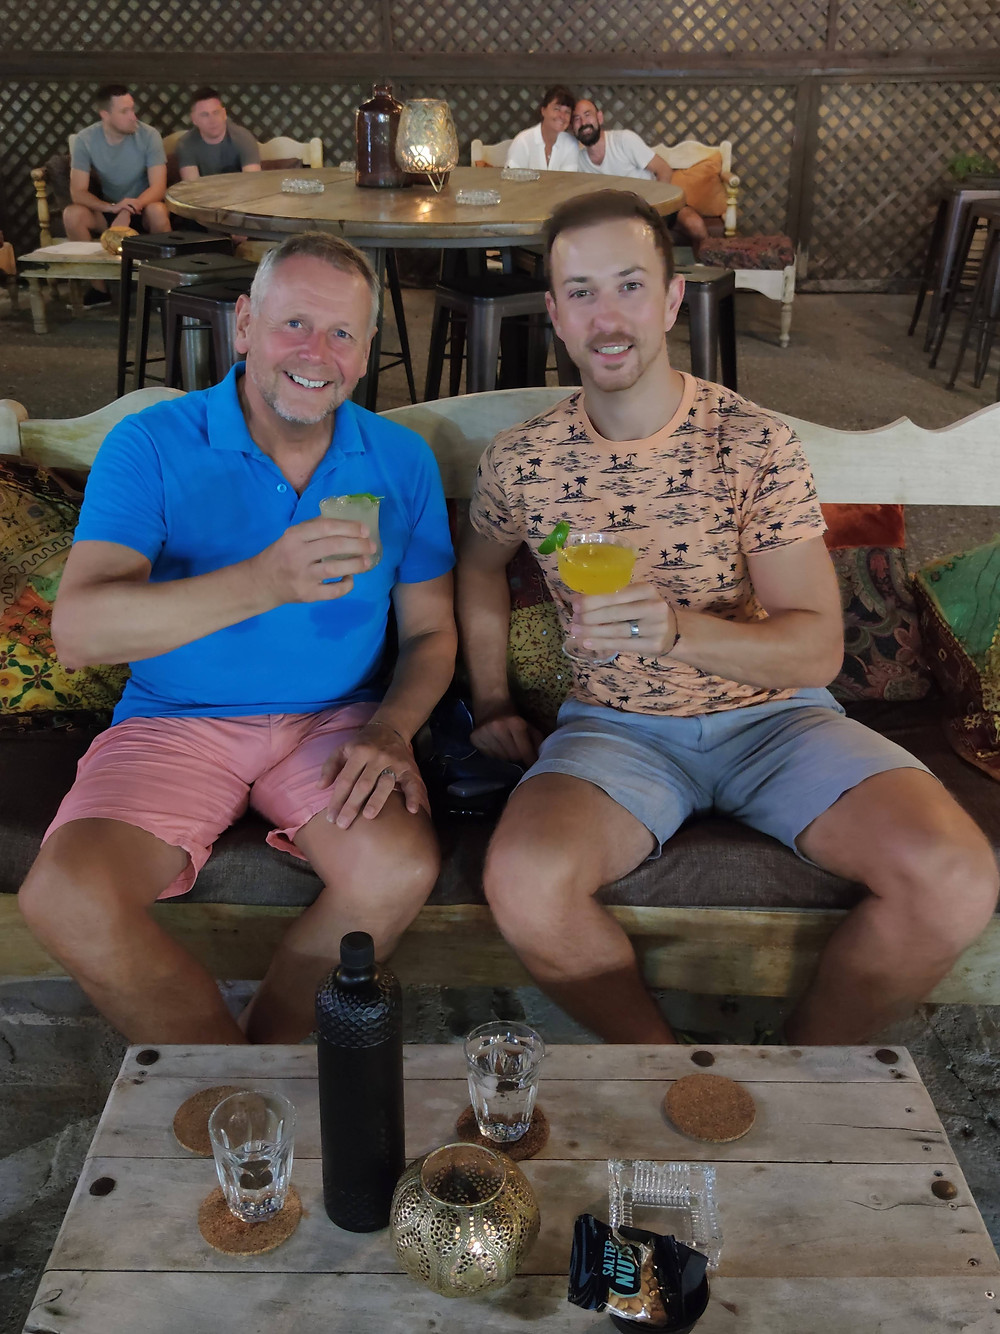 Age gap gay men with cocktails sitting on bench